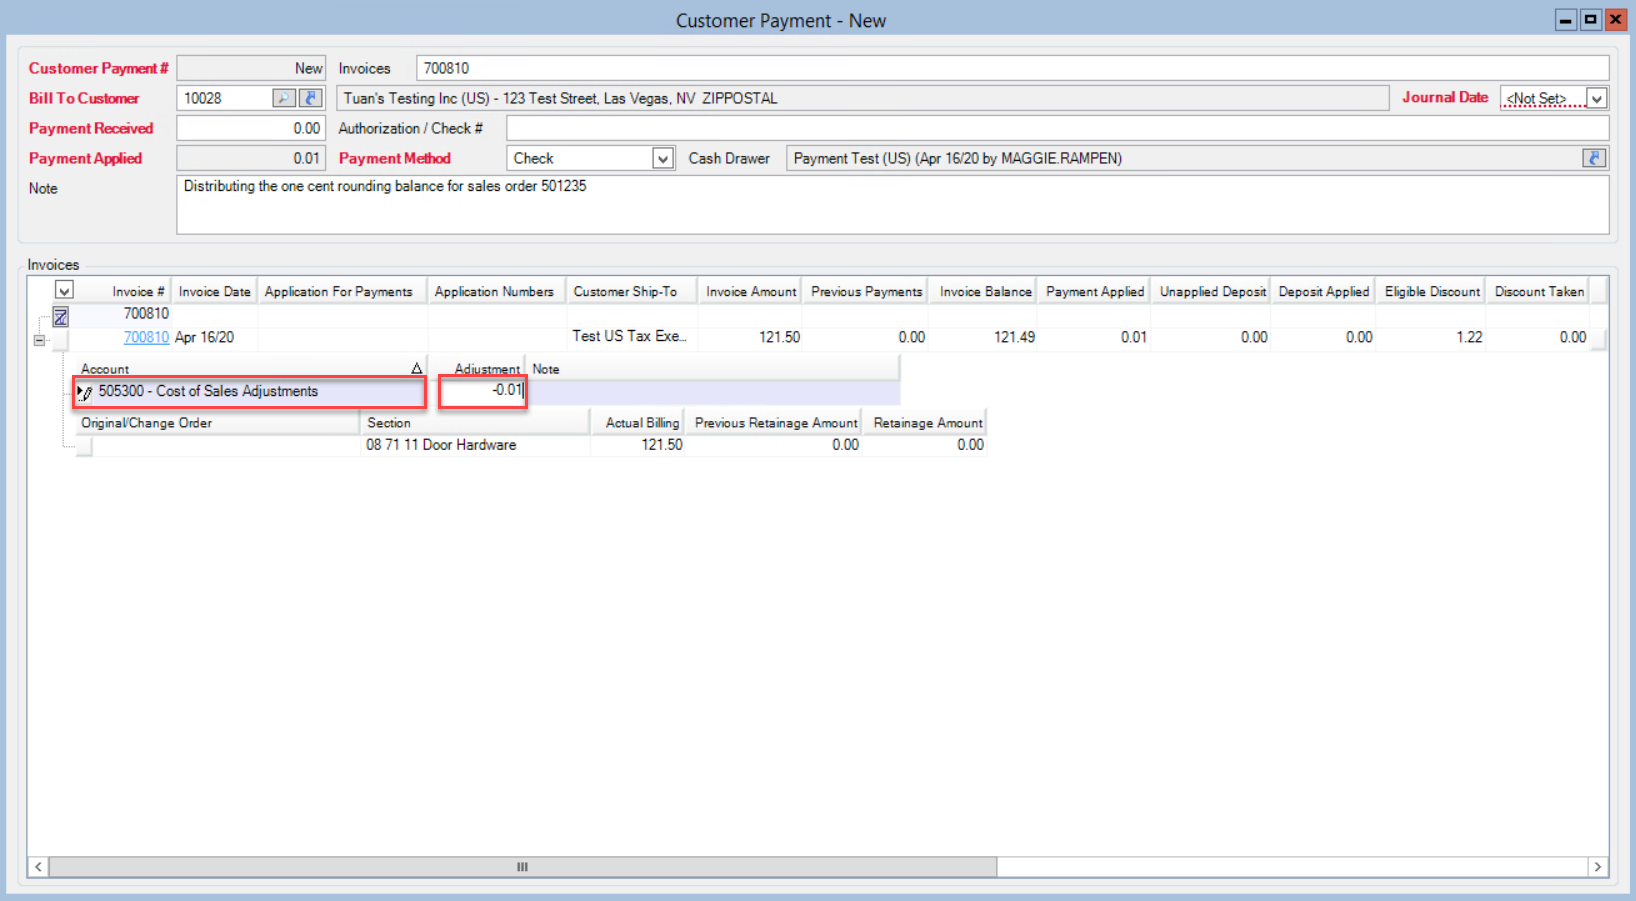 Customer Payments window; shows the location of the Accoutn field and Adjustment field